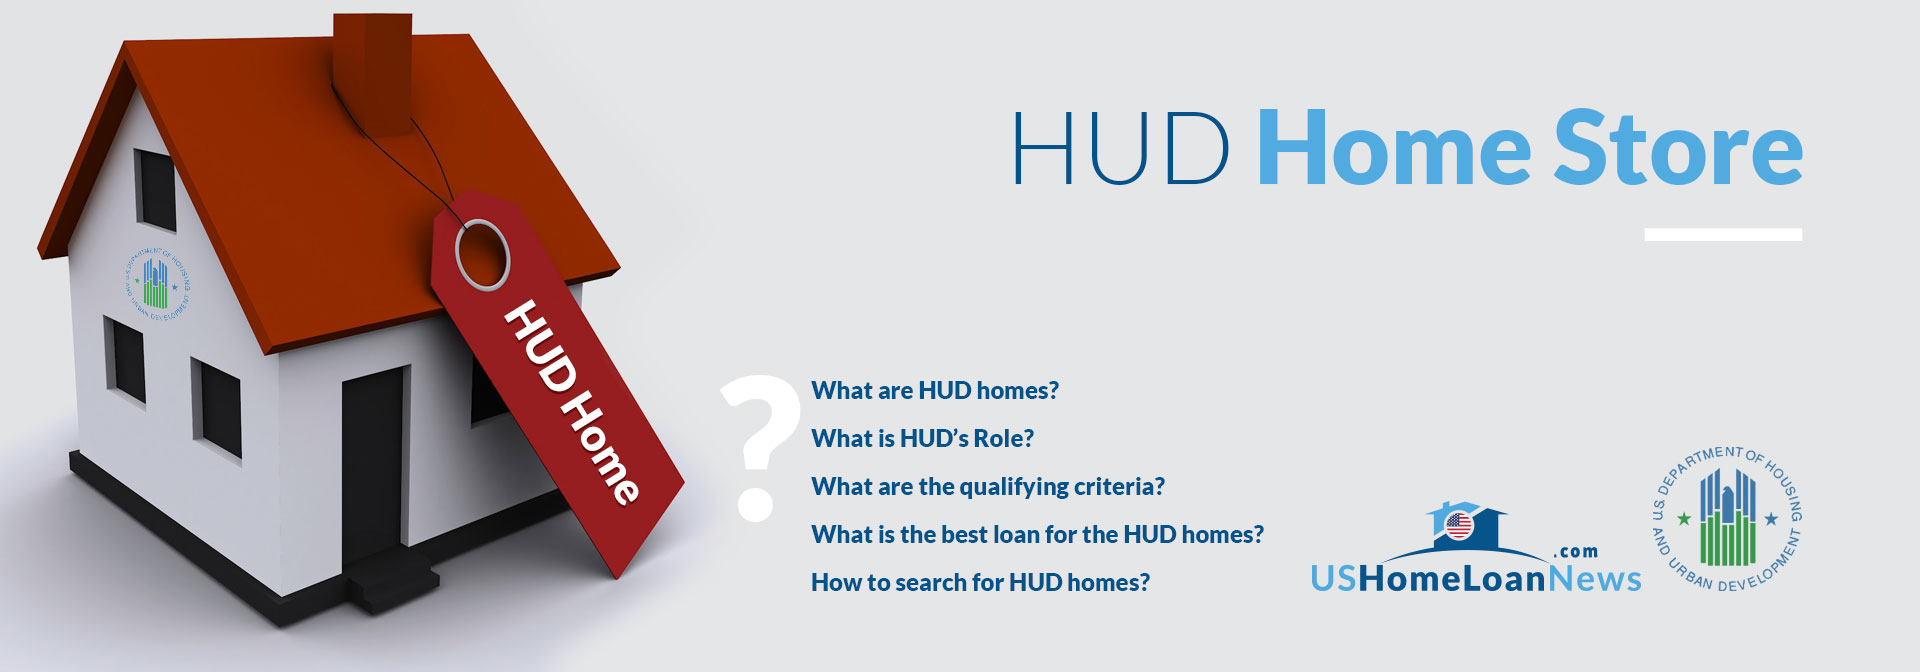 HUD Home Store - Is a HUD Home Right for You Find the best HUD Options on US Home Loan News